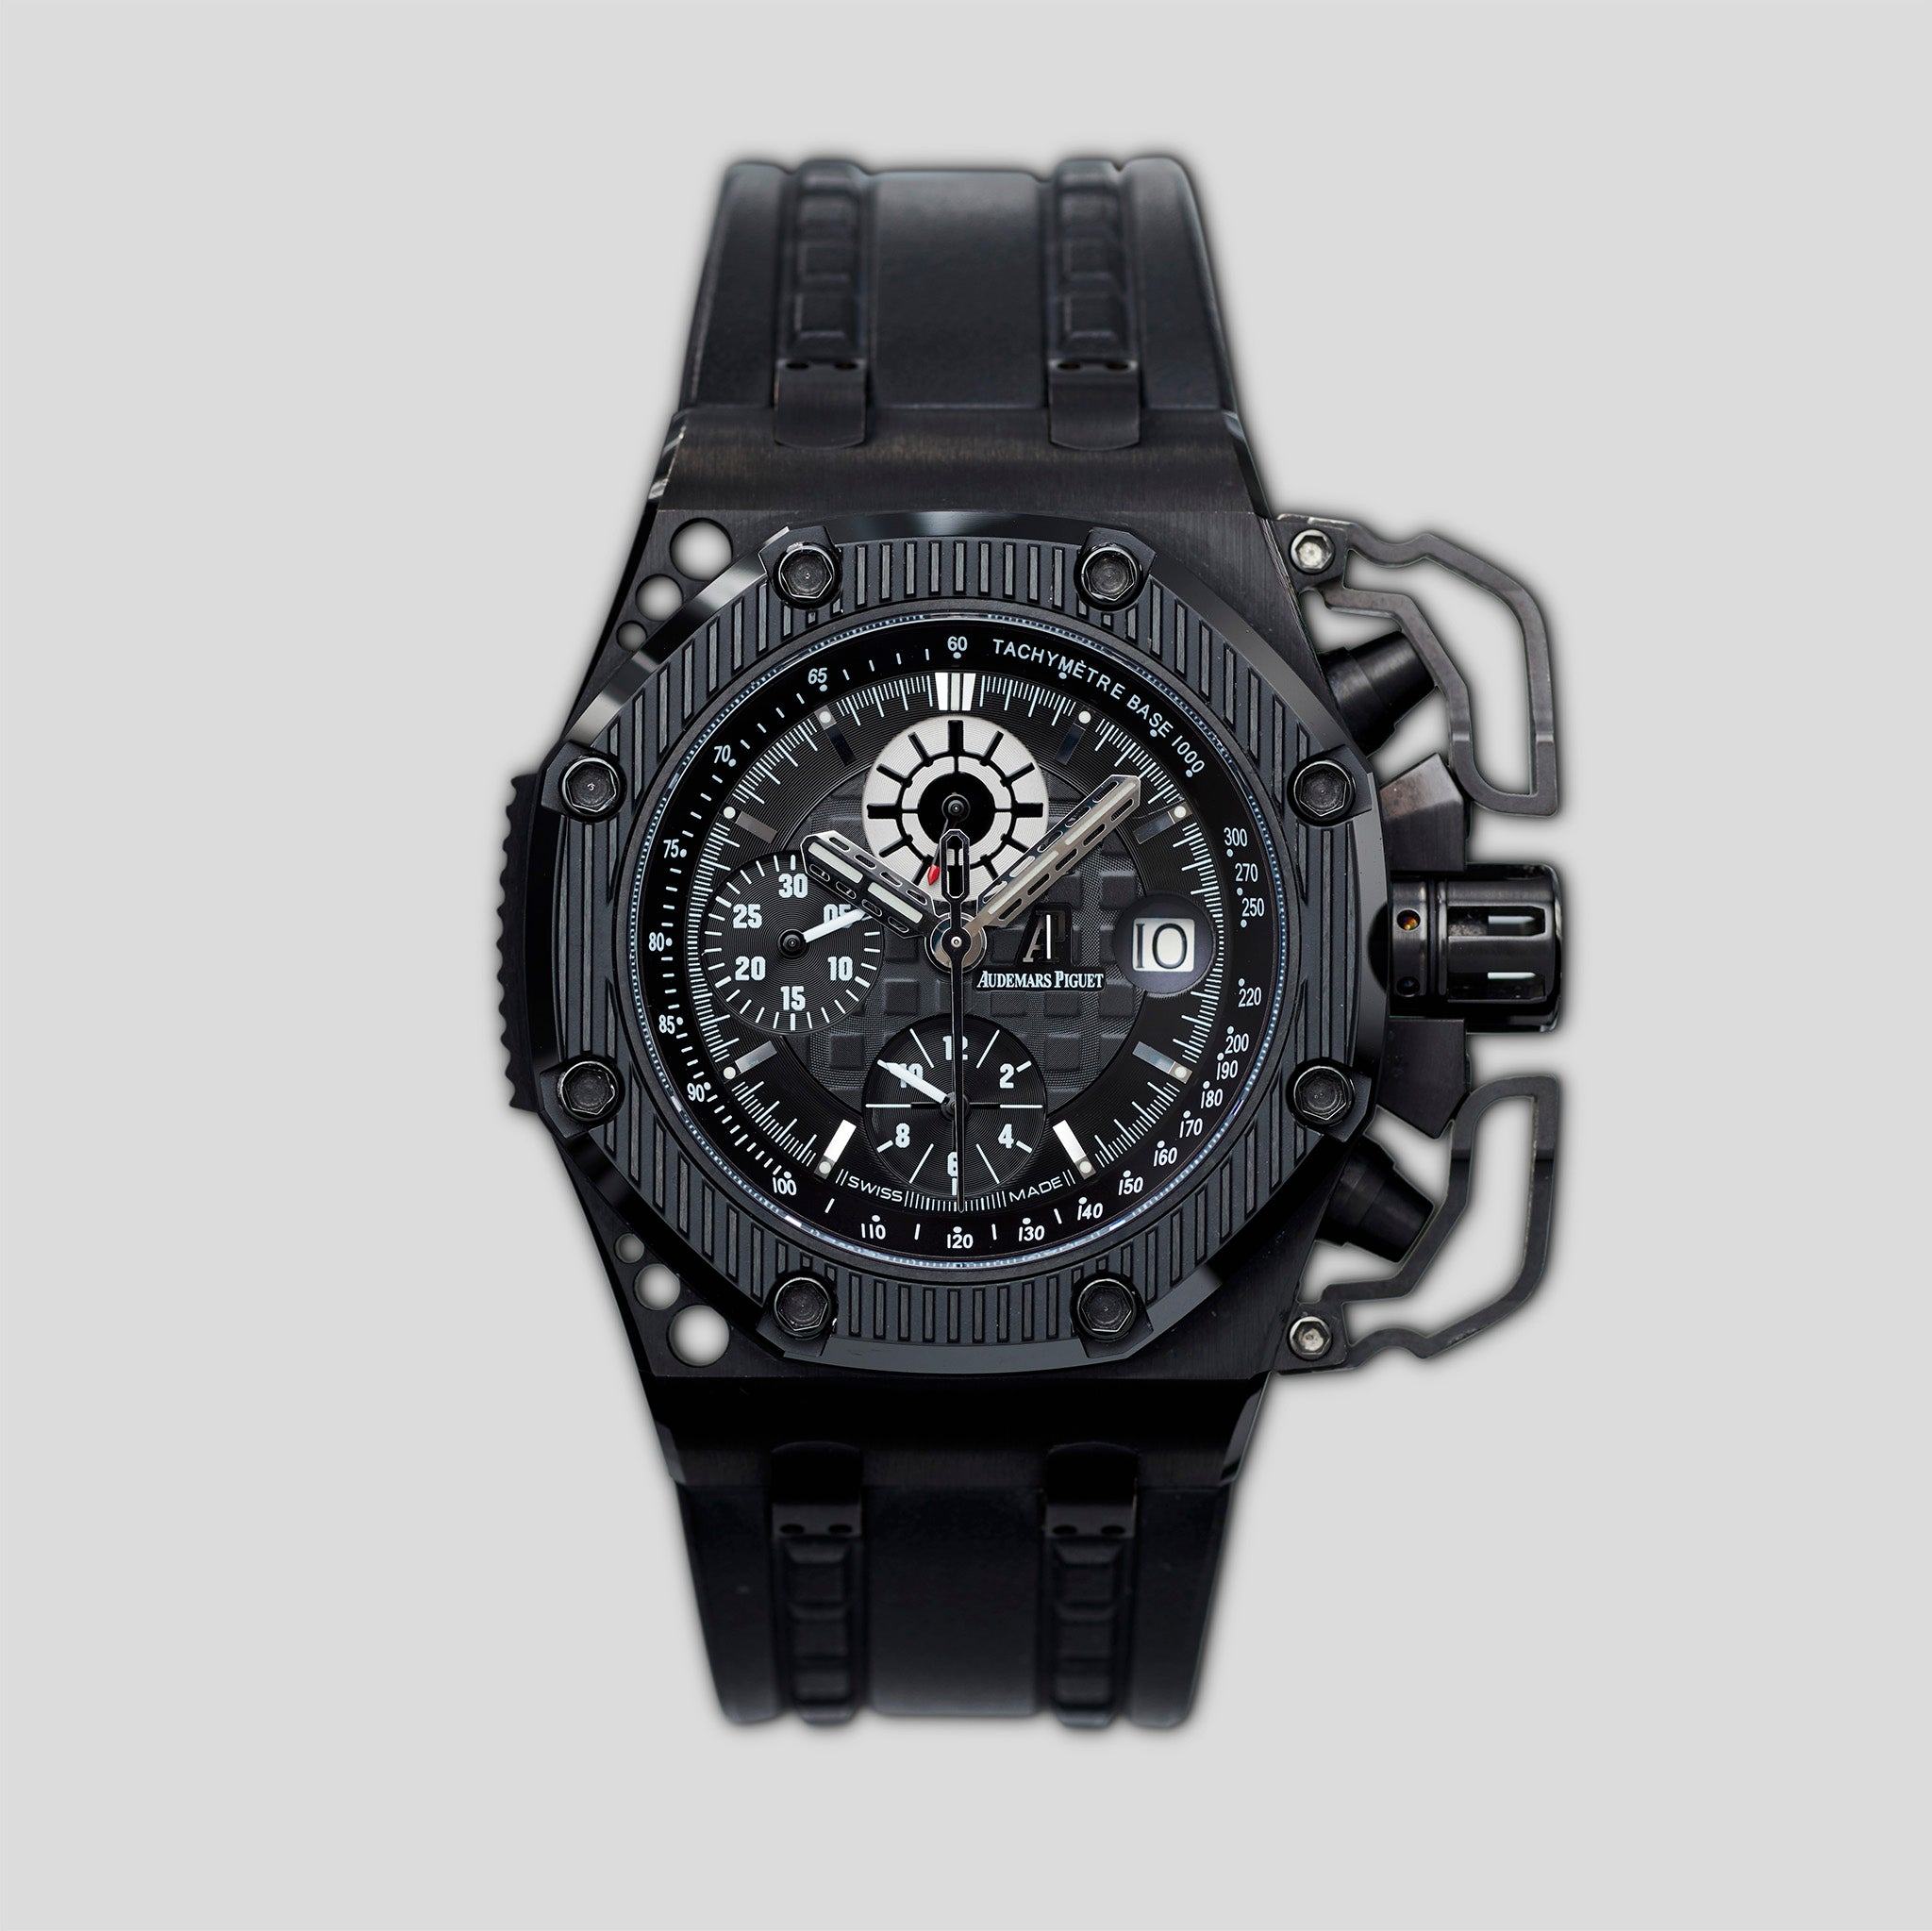 Royal Oak Offshore Survivor 26165IO.OO.A002CA.01